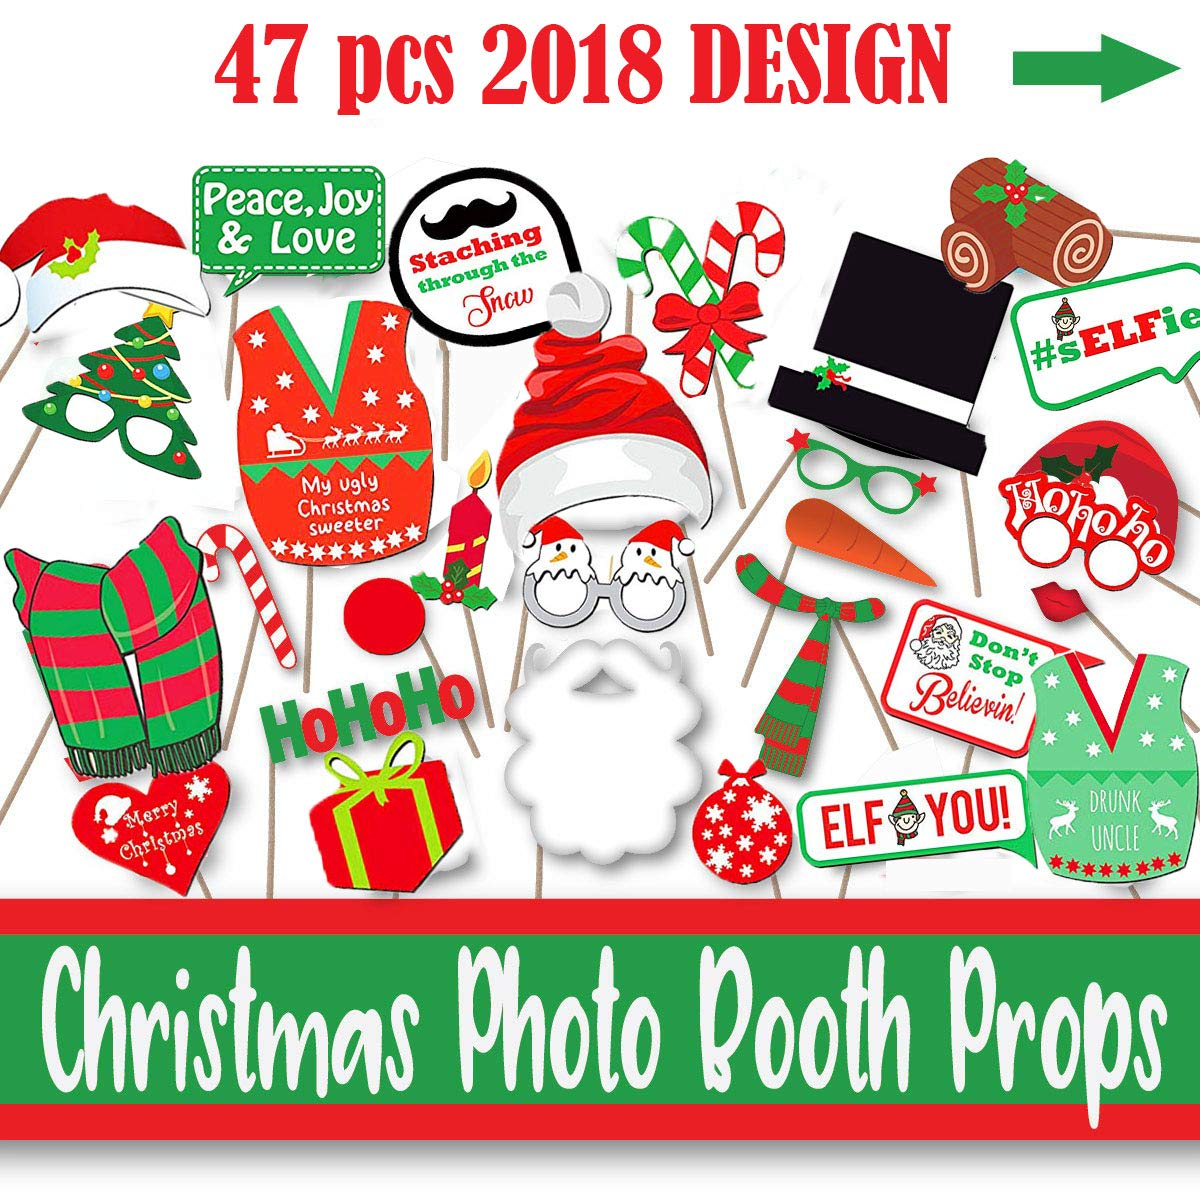 Christmas Theme Party Ideas For Family.Christmas Party Photo Booth Props Gifts Knit 47 Ugly